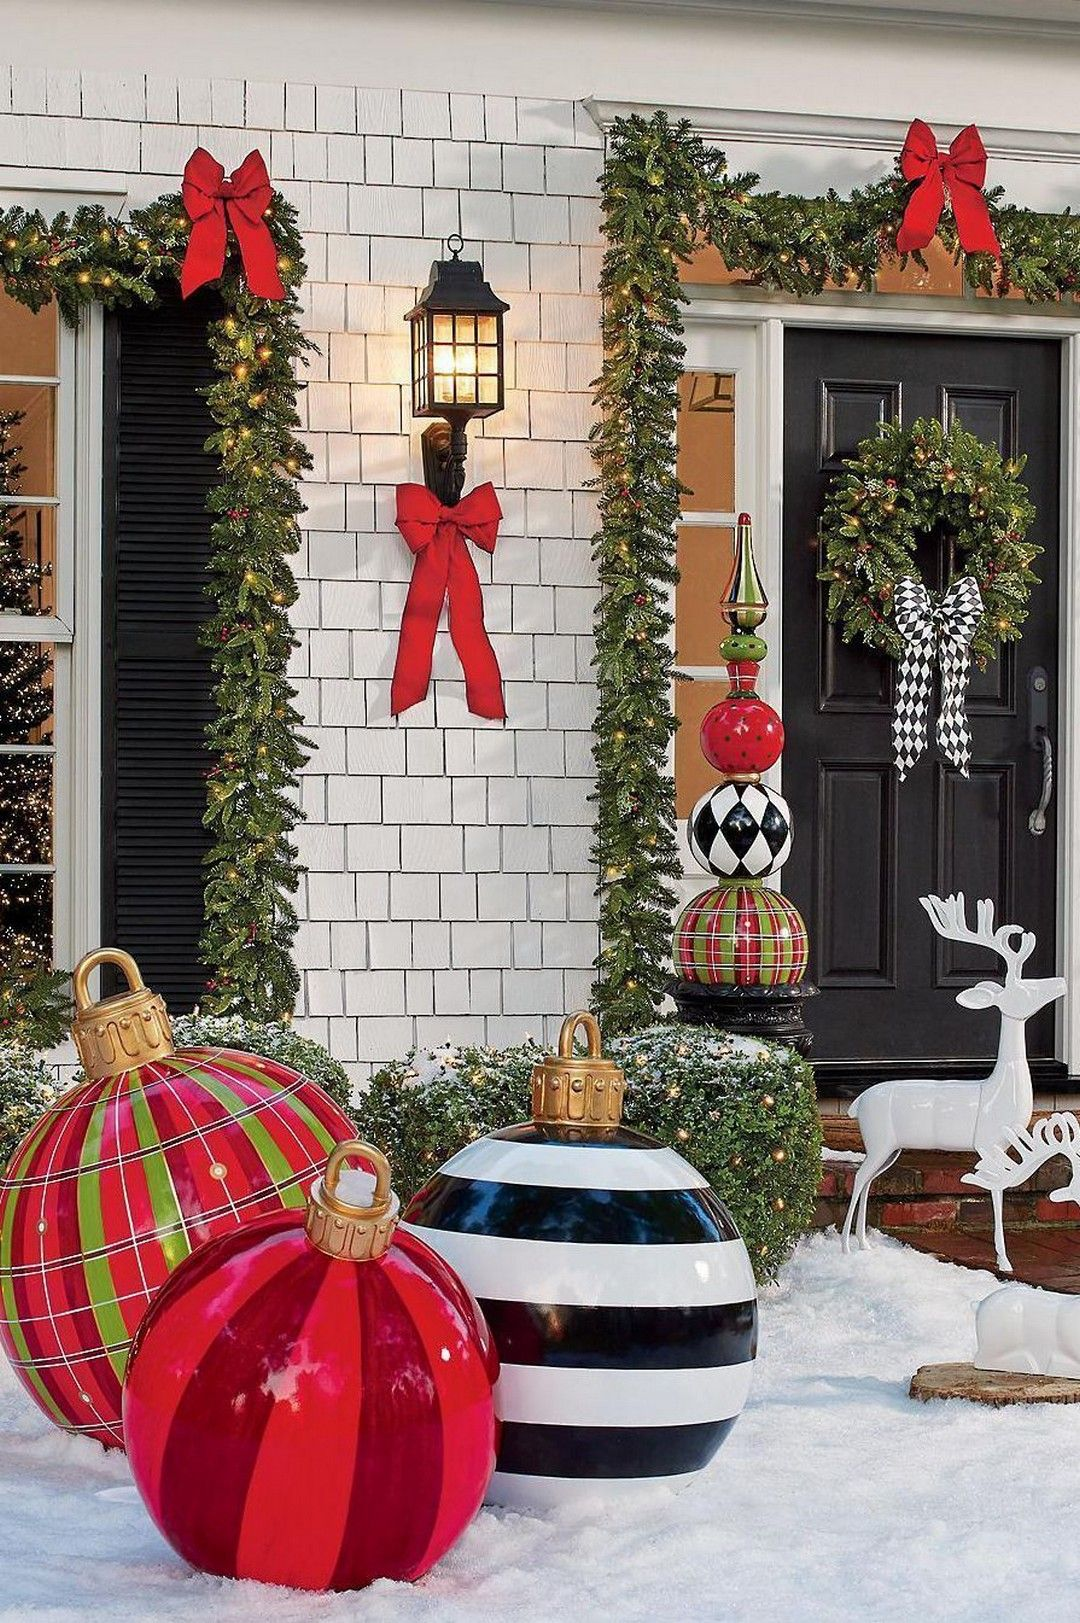 Outdoor Christmas Decorations Clearance.Looking For Furniture Isn T A Sheet Of Cake Outdoor